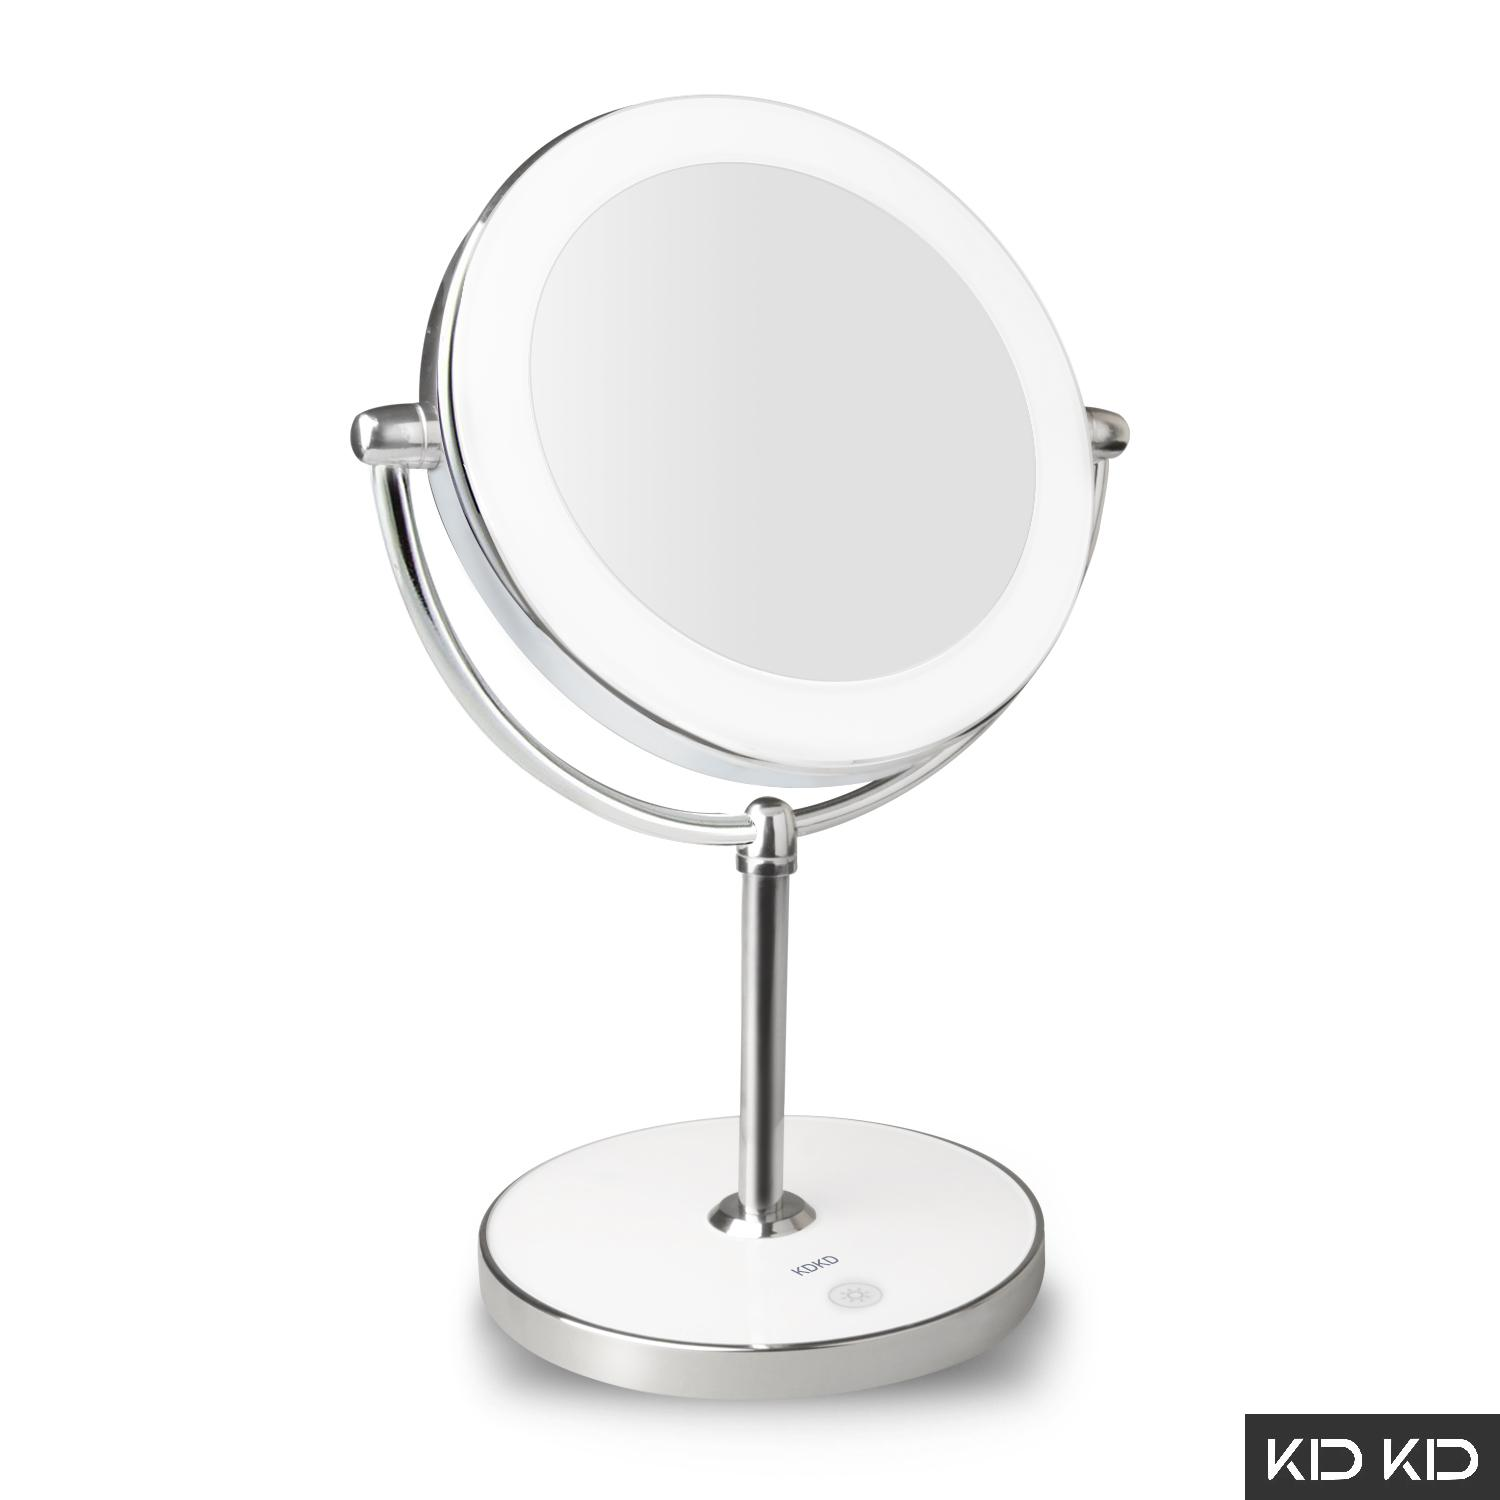 Kdkd Lighted Makeup Mirror 1x 7x Magnification Double Sided Round Touch Control Led Dimmable Swivel Vanity White